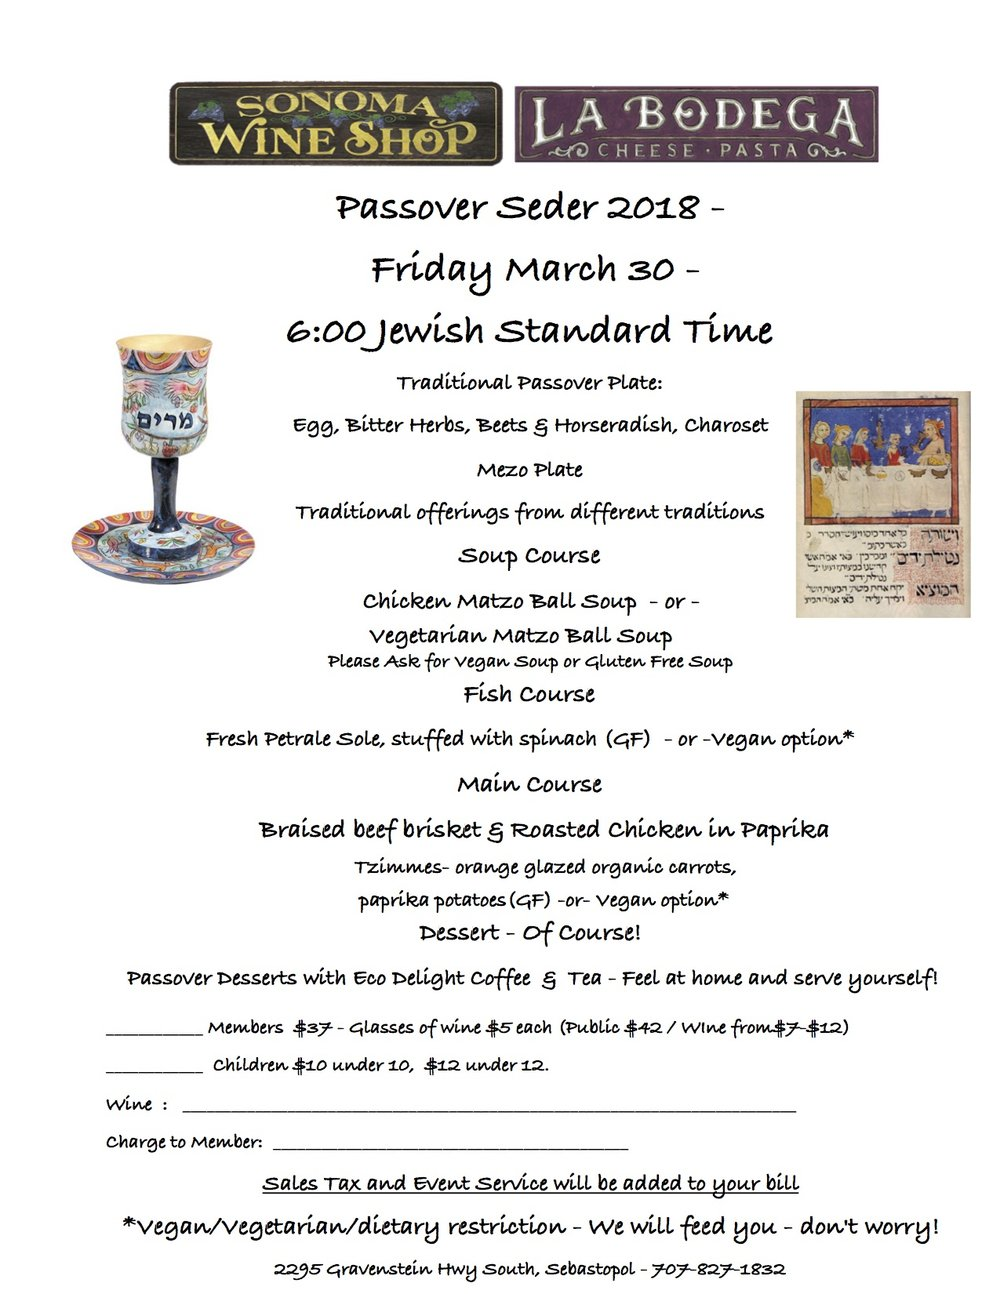 passover dinner menu 2018 Friday.pages.jpg